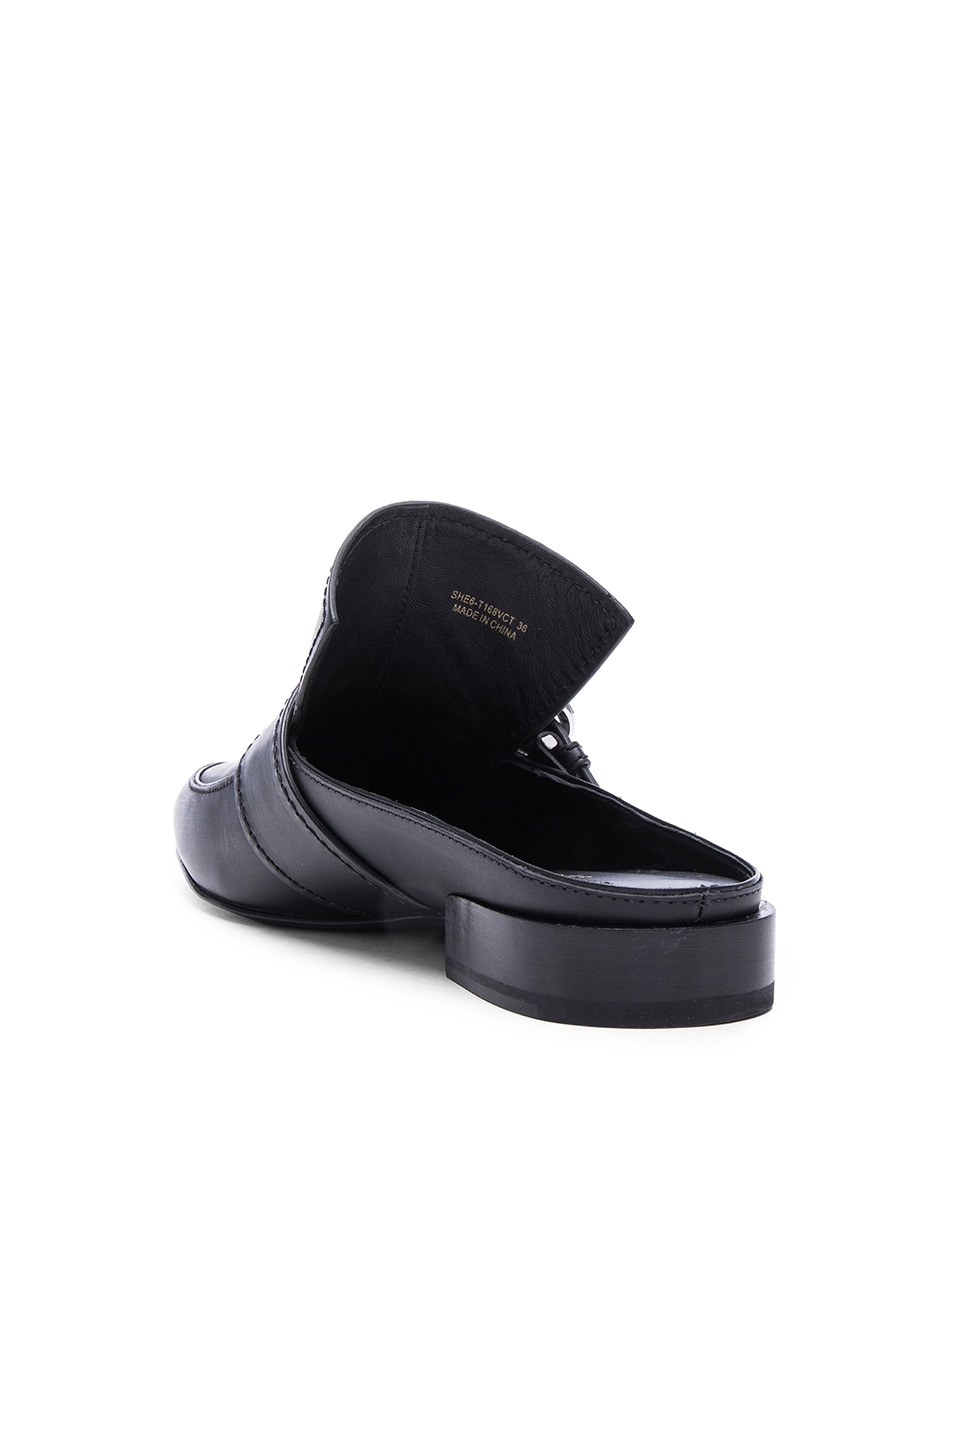 Image 3 of 3.1 phillip lim Louie Leather Mule Flats in Black